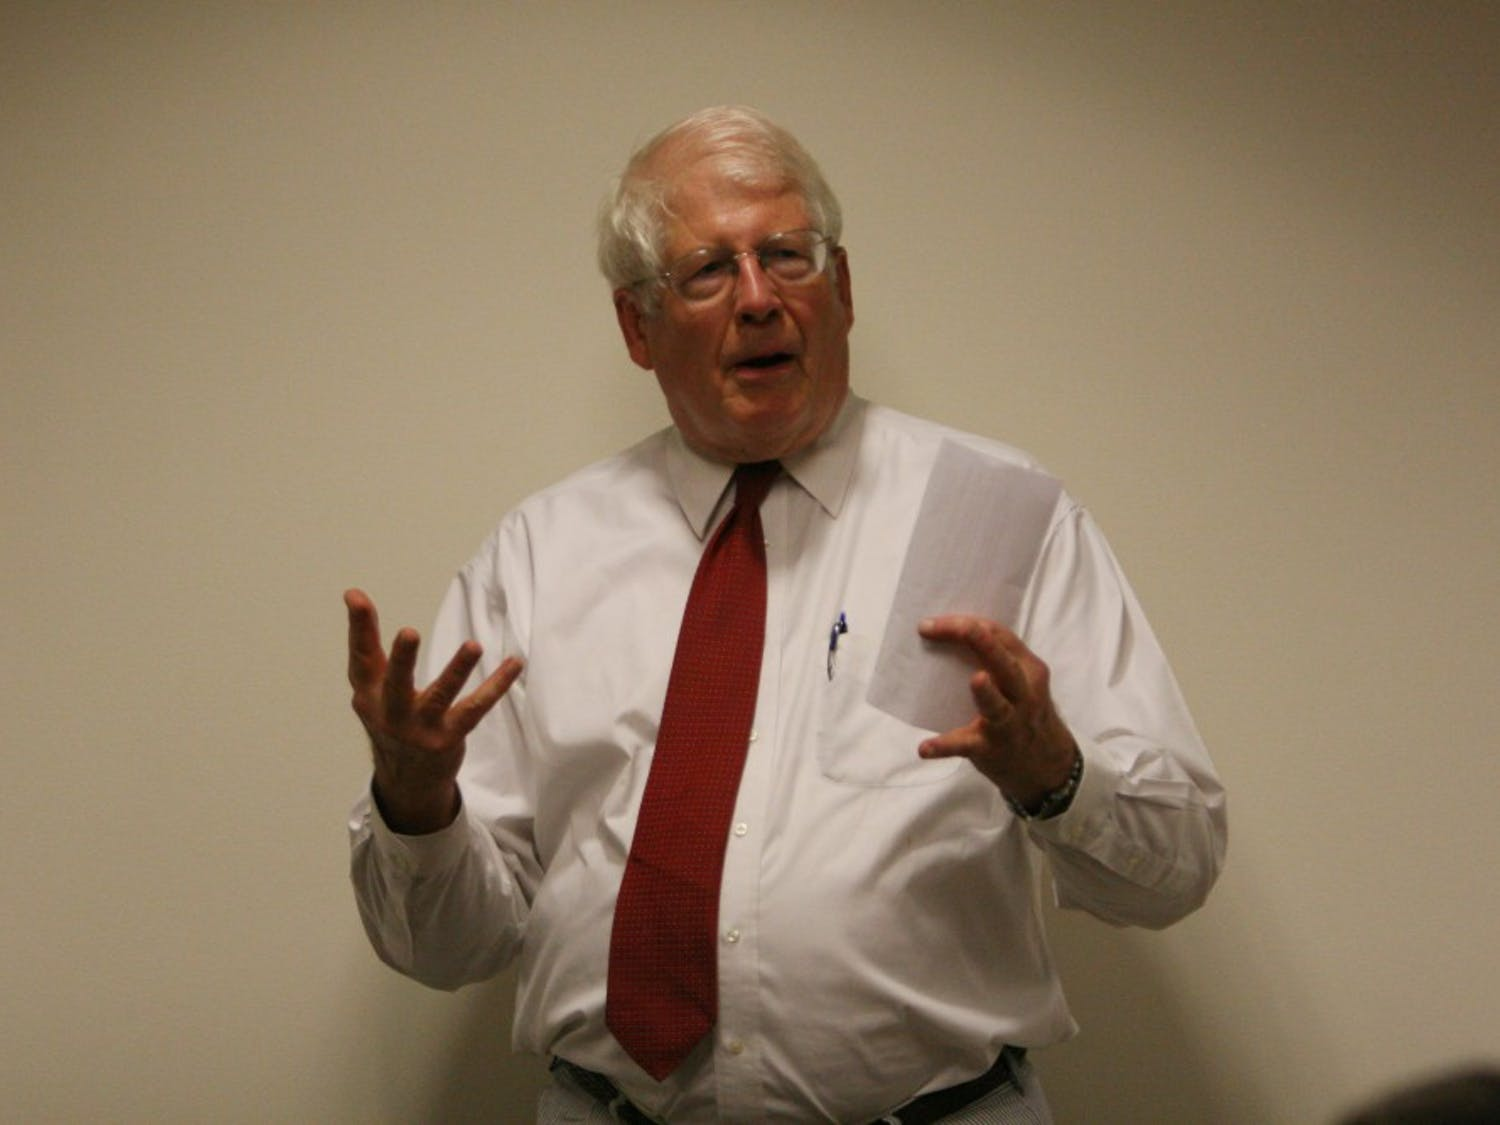 Congressman David Price speaks at a general body meeting of the UNC Young Democrats at the Student Union on Monday night. Price, the representative for North Carolina's 4th District, gave his perspective to a crowded audience and took students' questions.